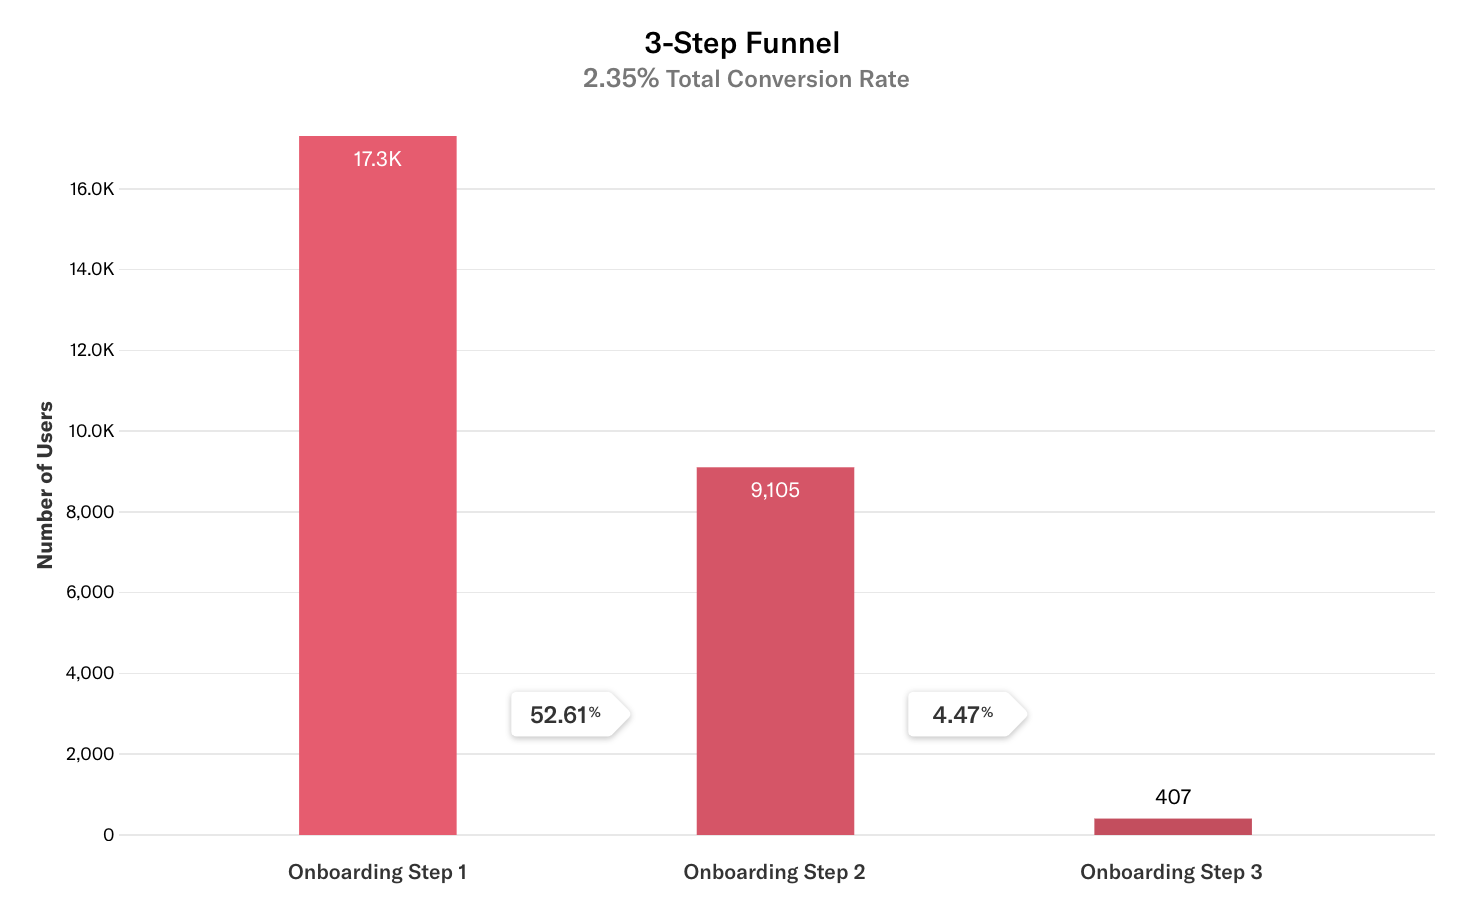 Results of a 3-step funnel for Onboarding steps 1, 2, and 3